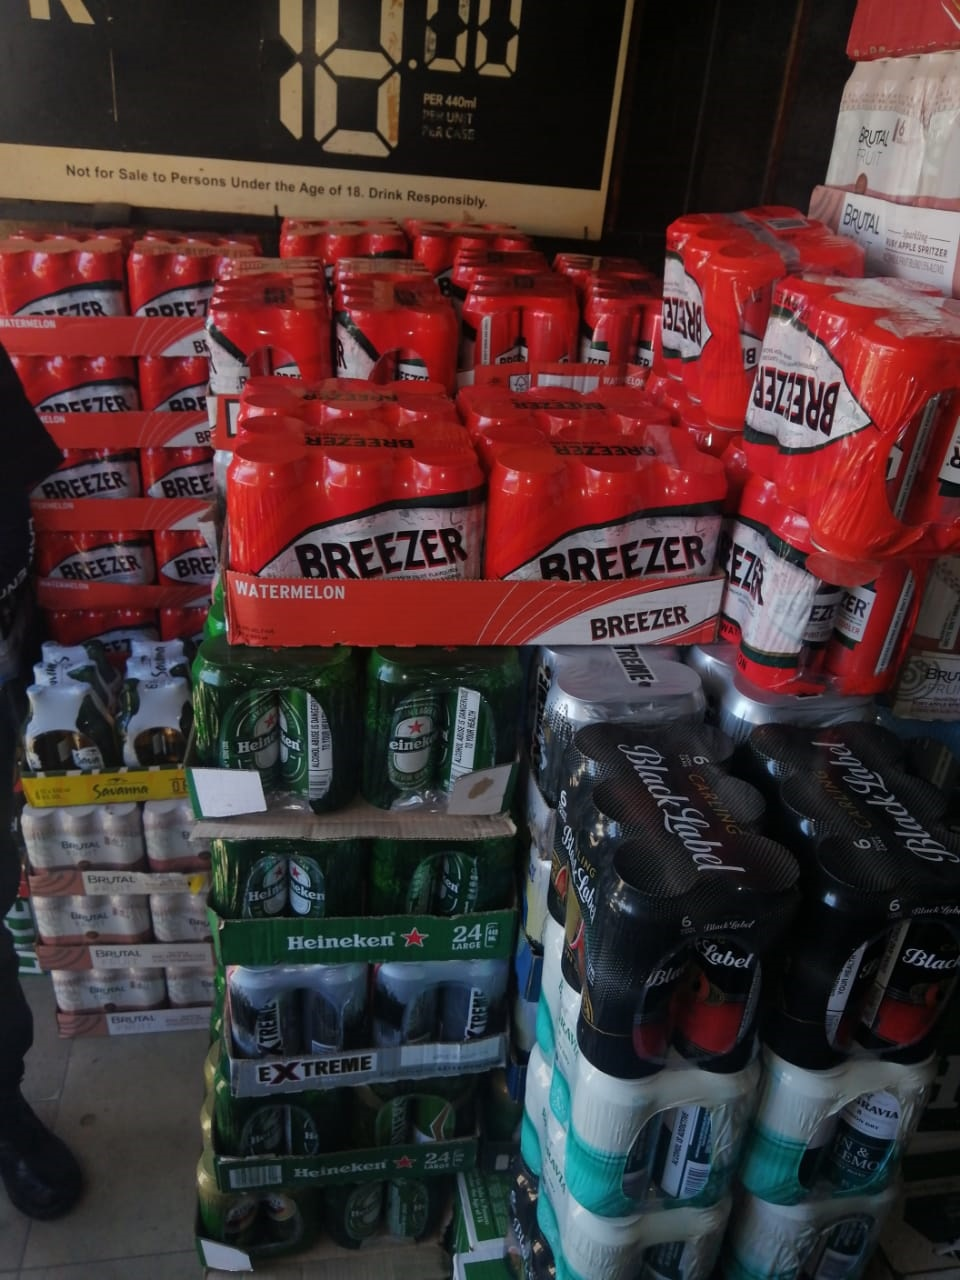 9 SA Breweries drivers arrested, massive consignment impounded - News24